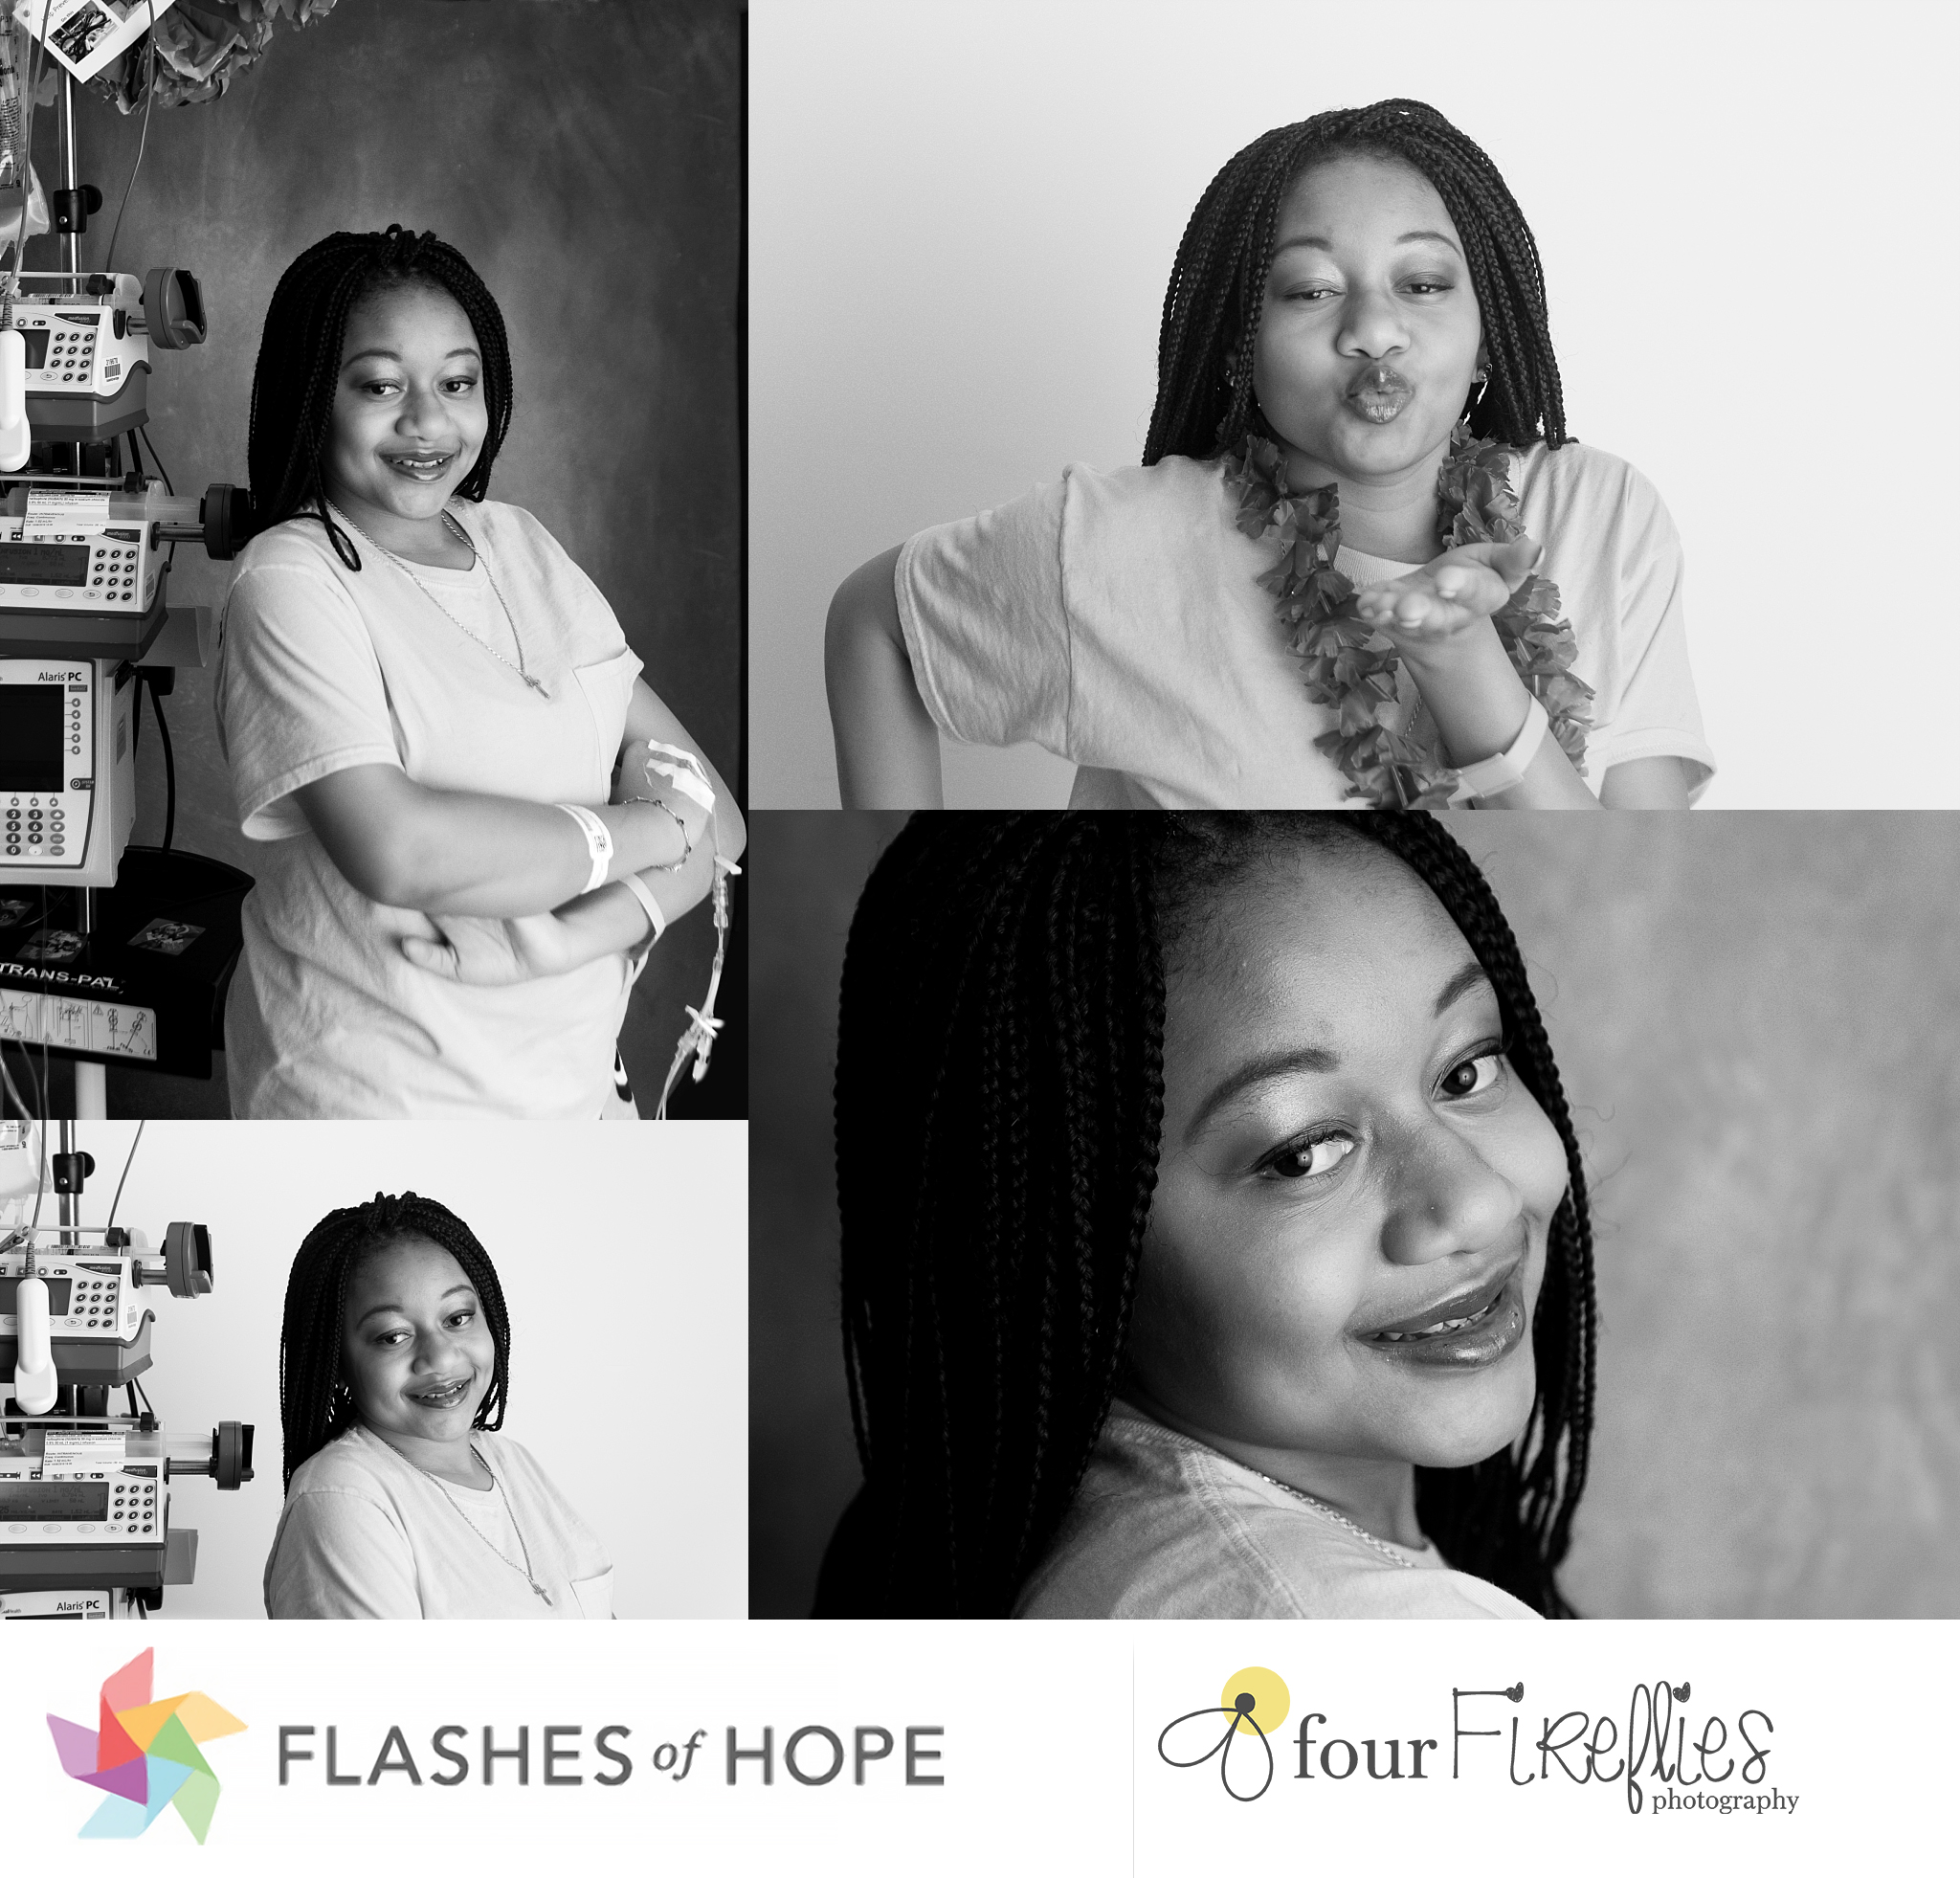 st-louis-photographer-flashes-of-hope-collage-girl-fighting-cancer-at-childrens-hospital.jpg